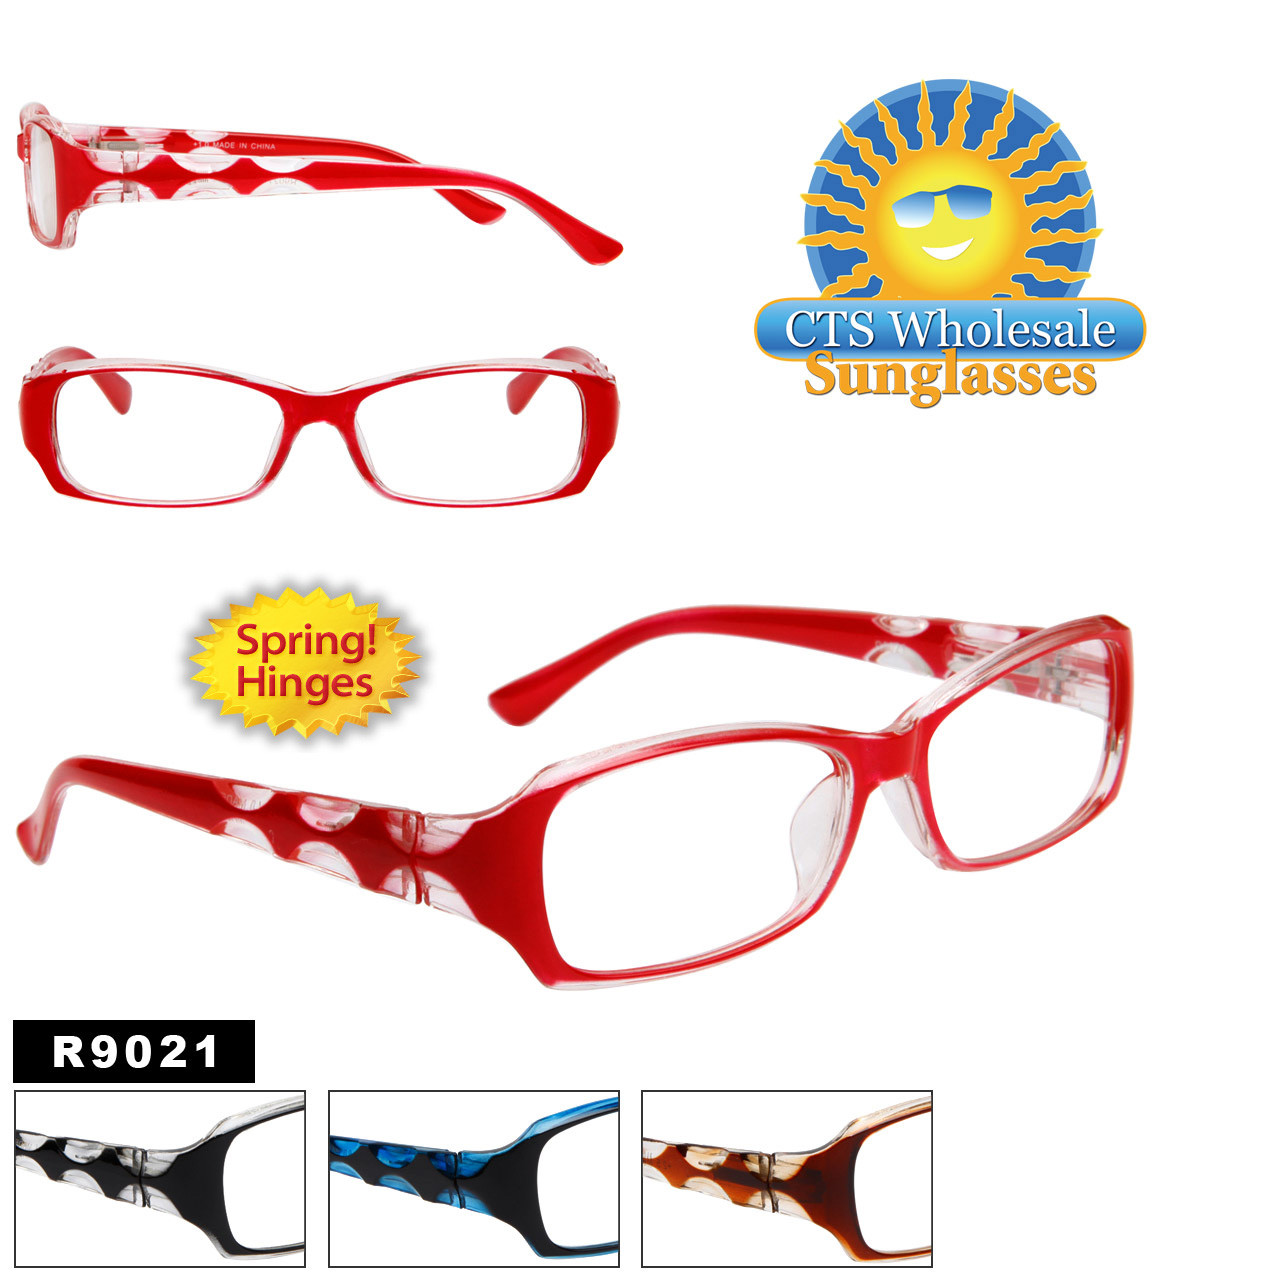 Wholesale Reading Glasses R9021 with Spring Hinges